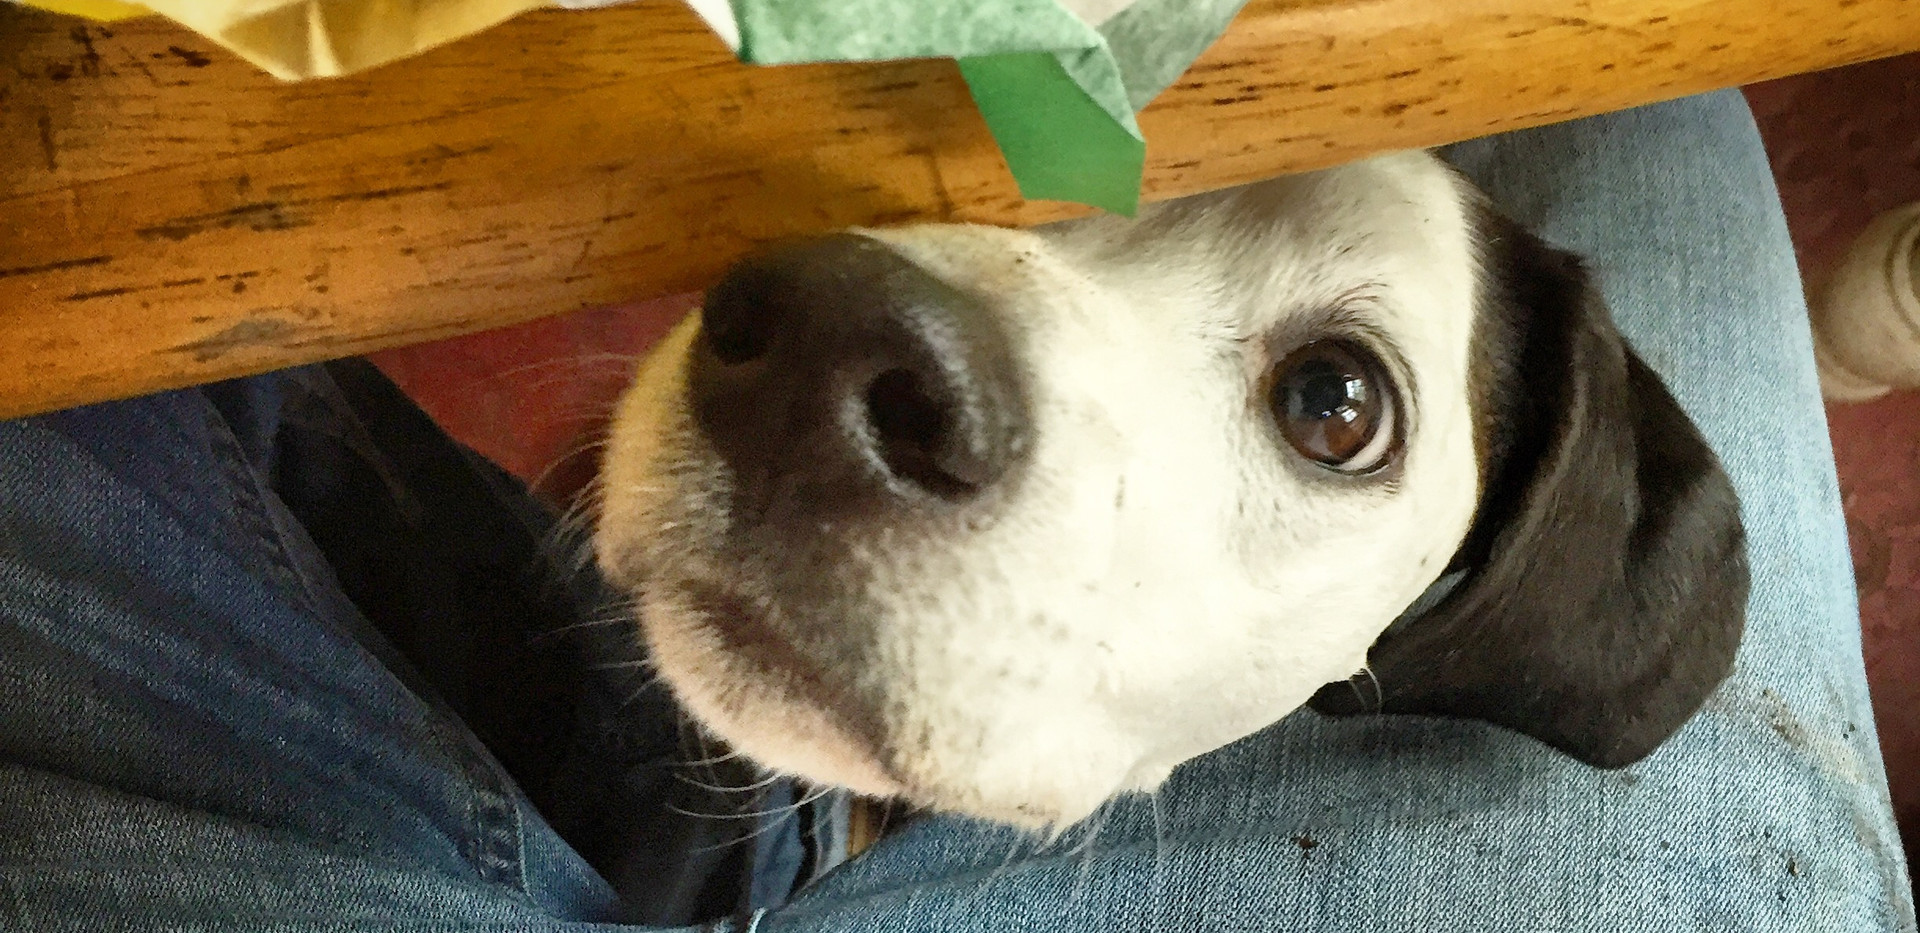 Patch is very interested if you have food